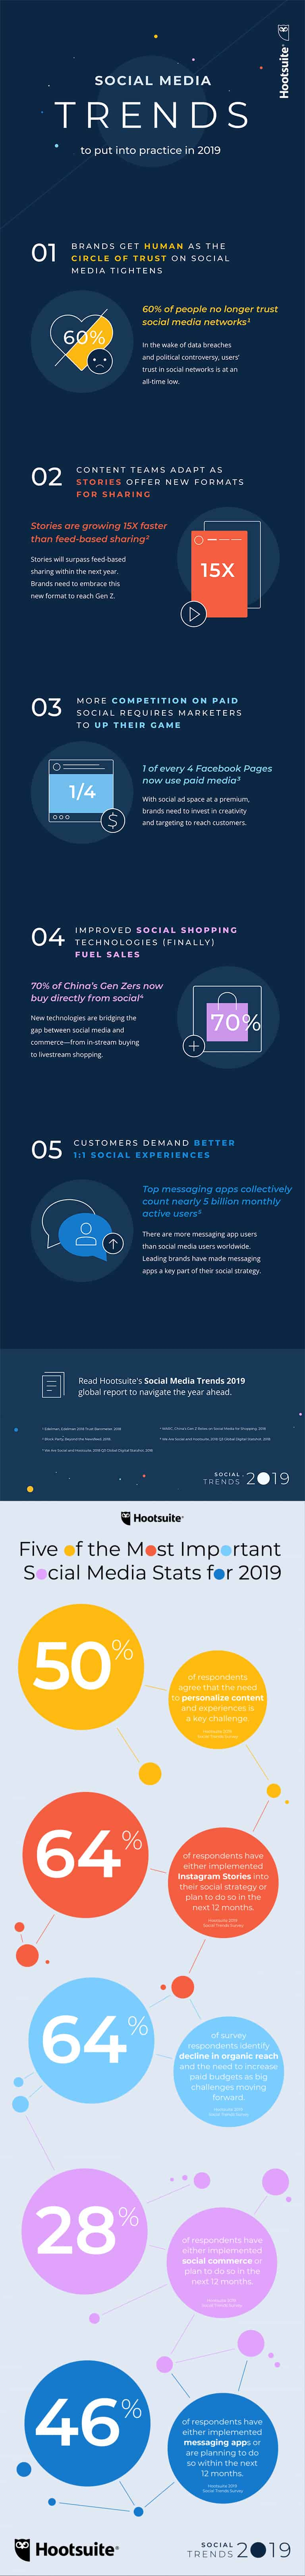 5 Social Media Trends To Put Into Practice In 2019